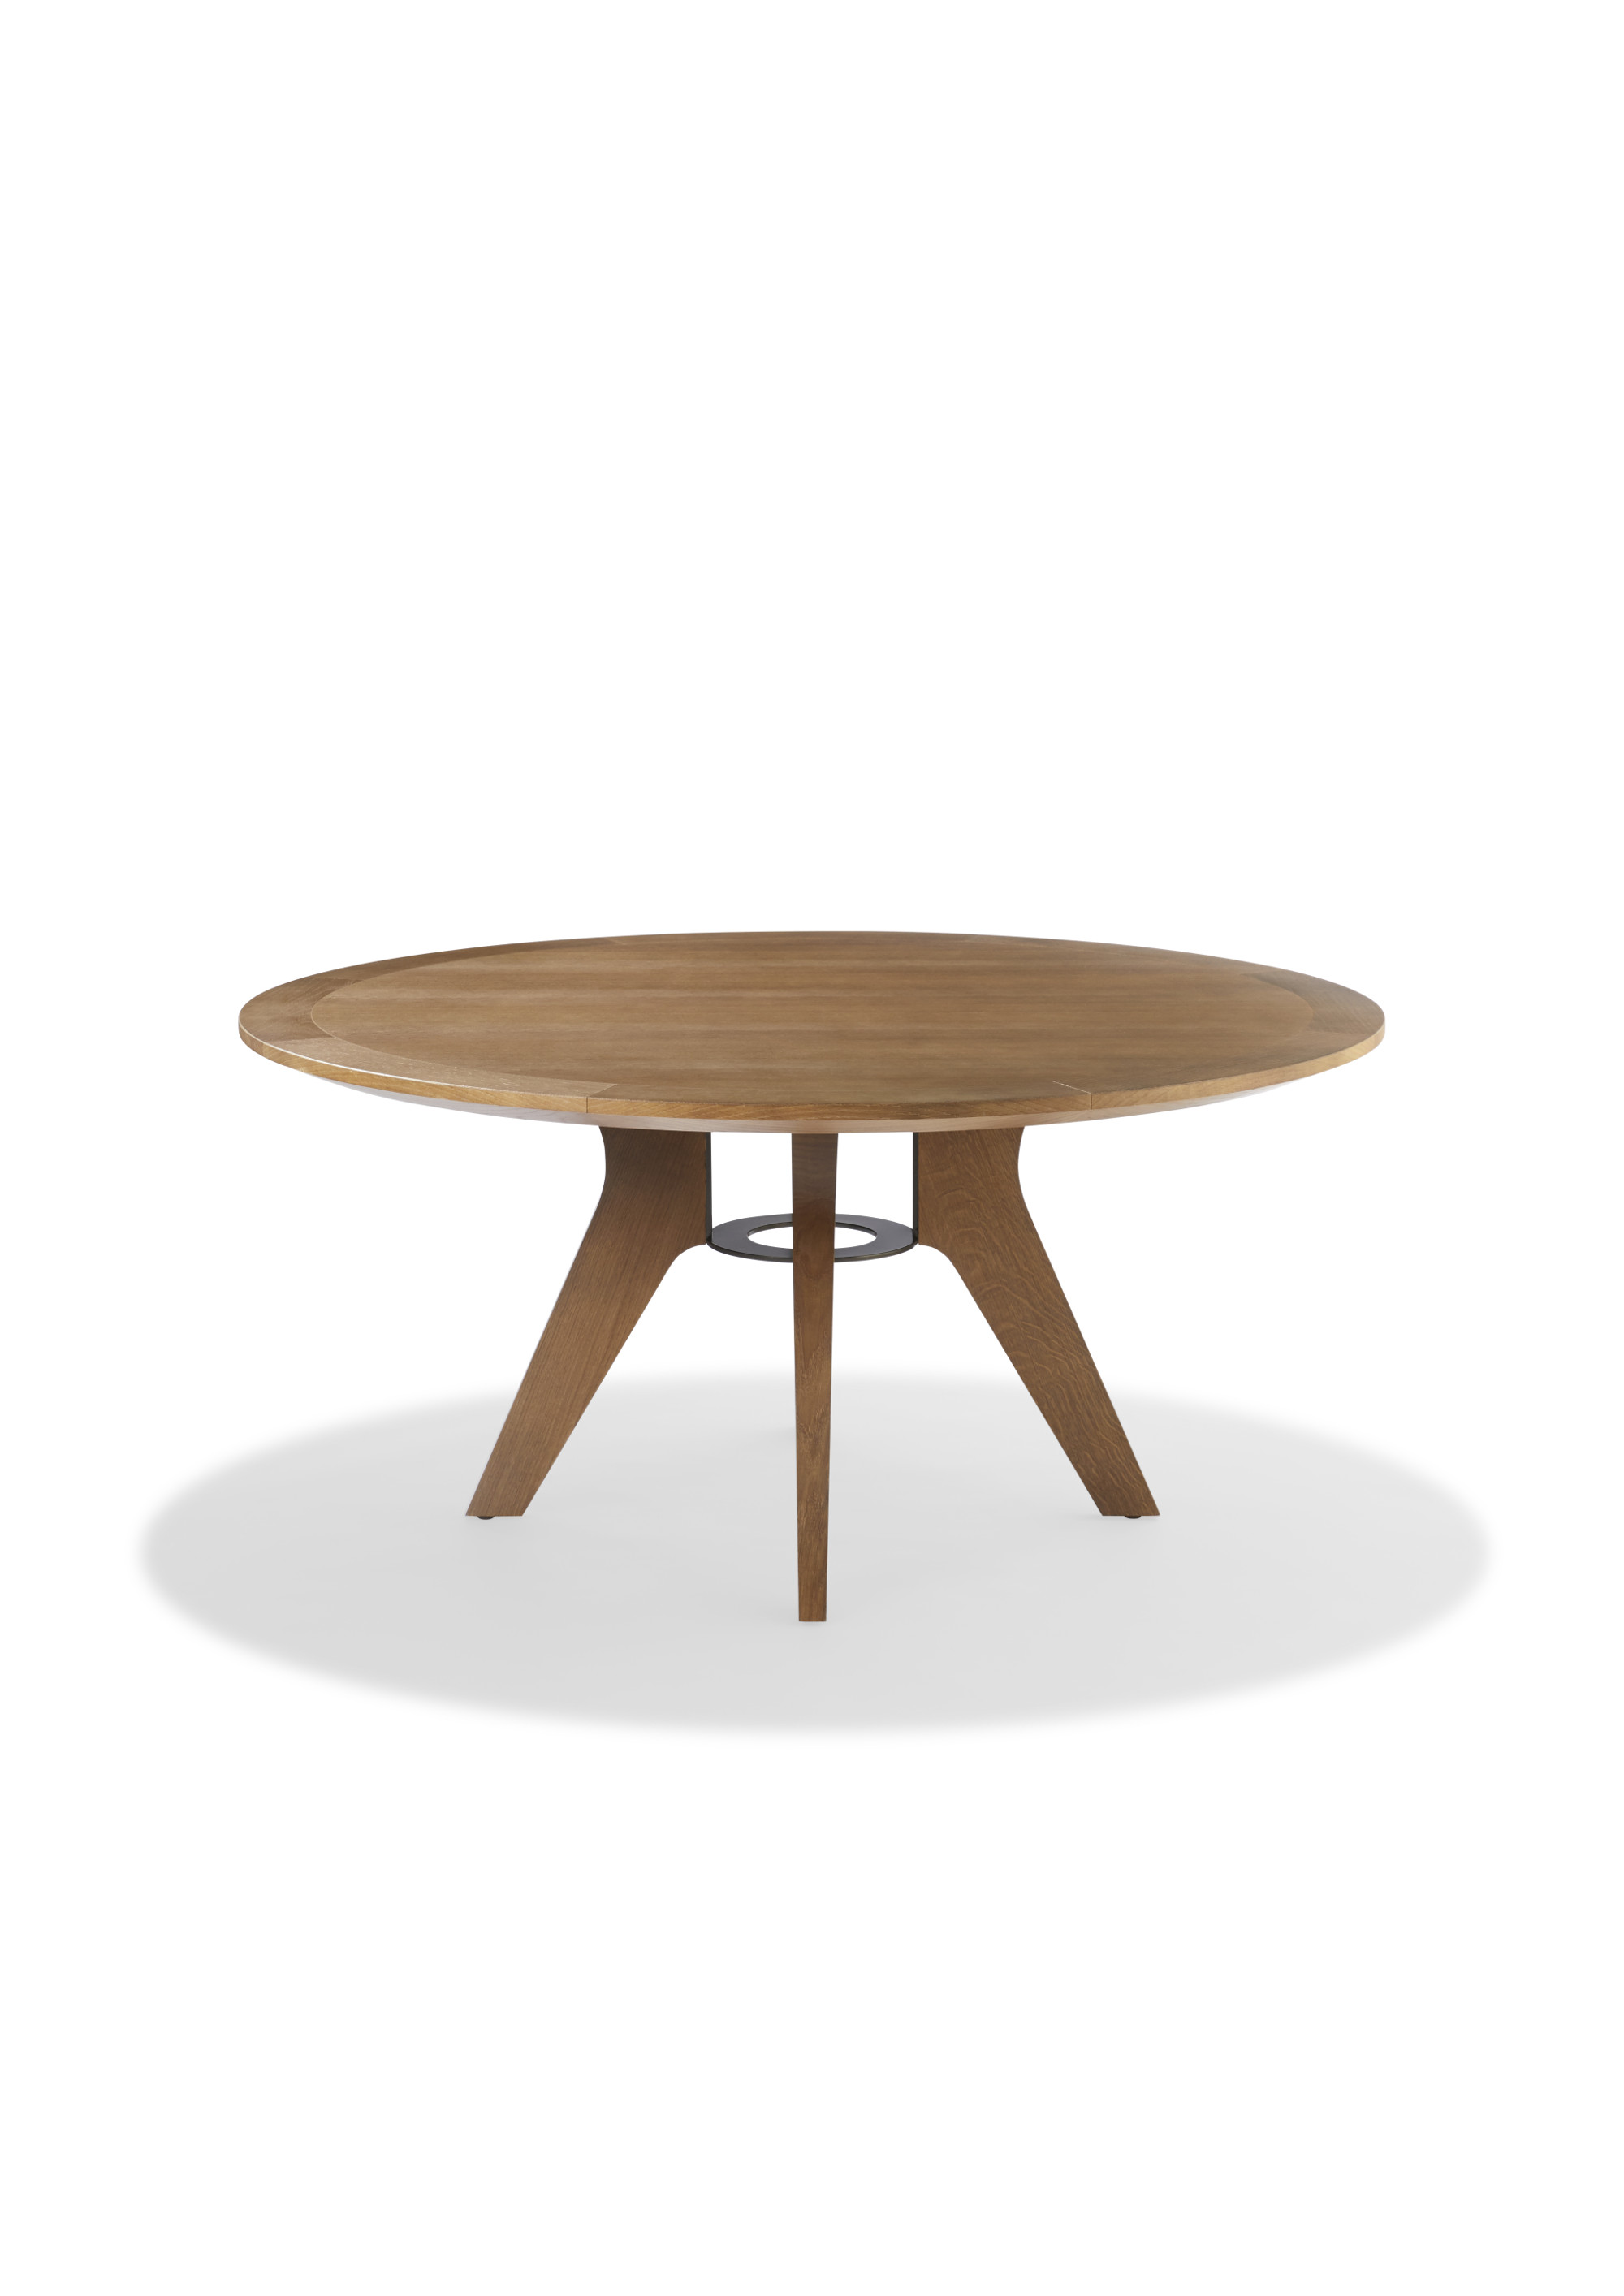 Alambria-table-2019.jpg